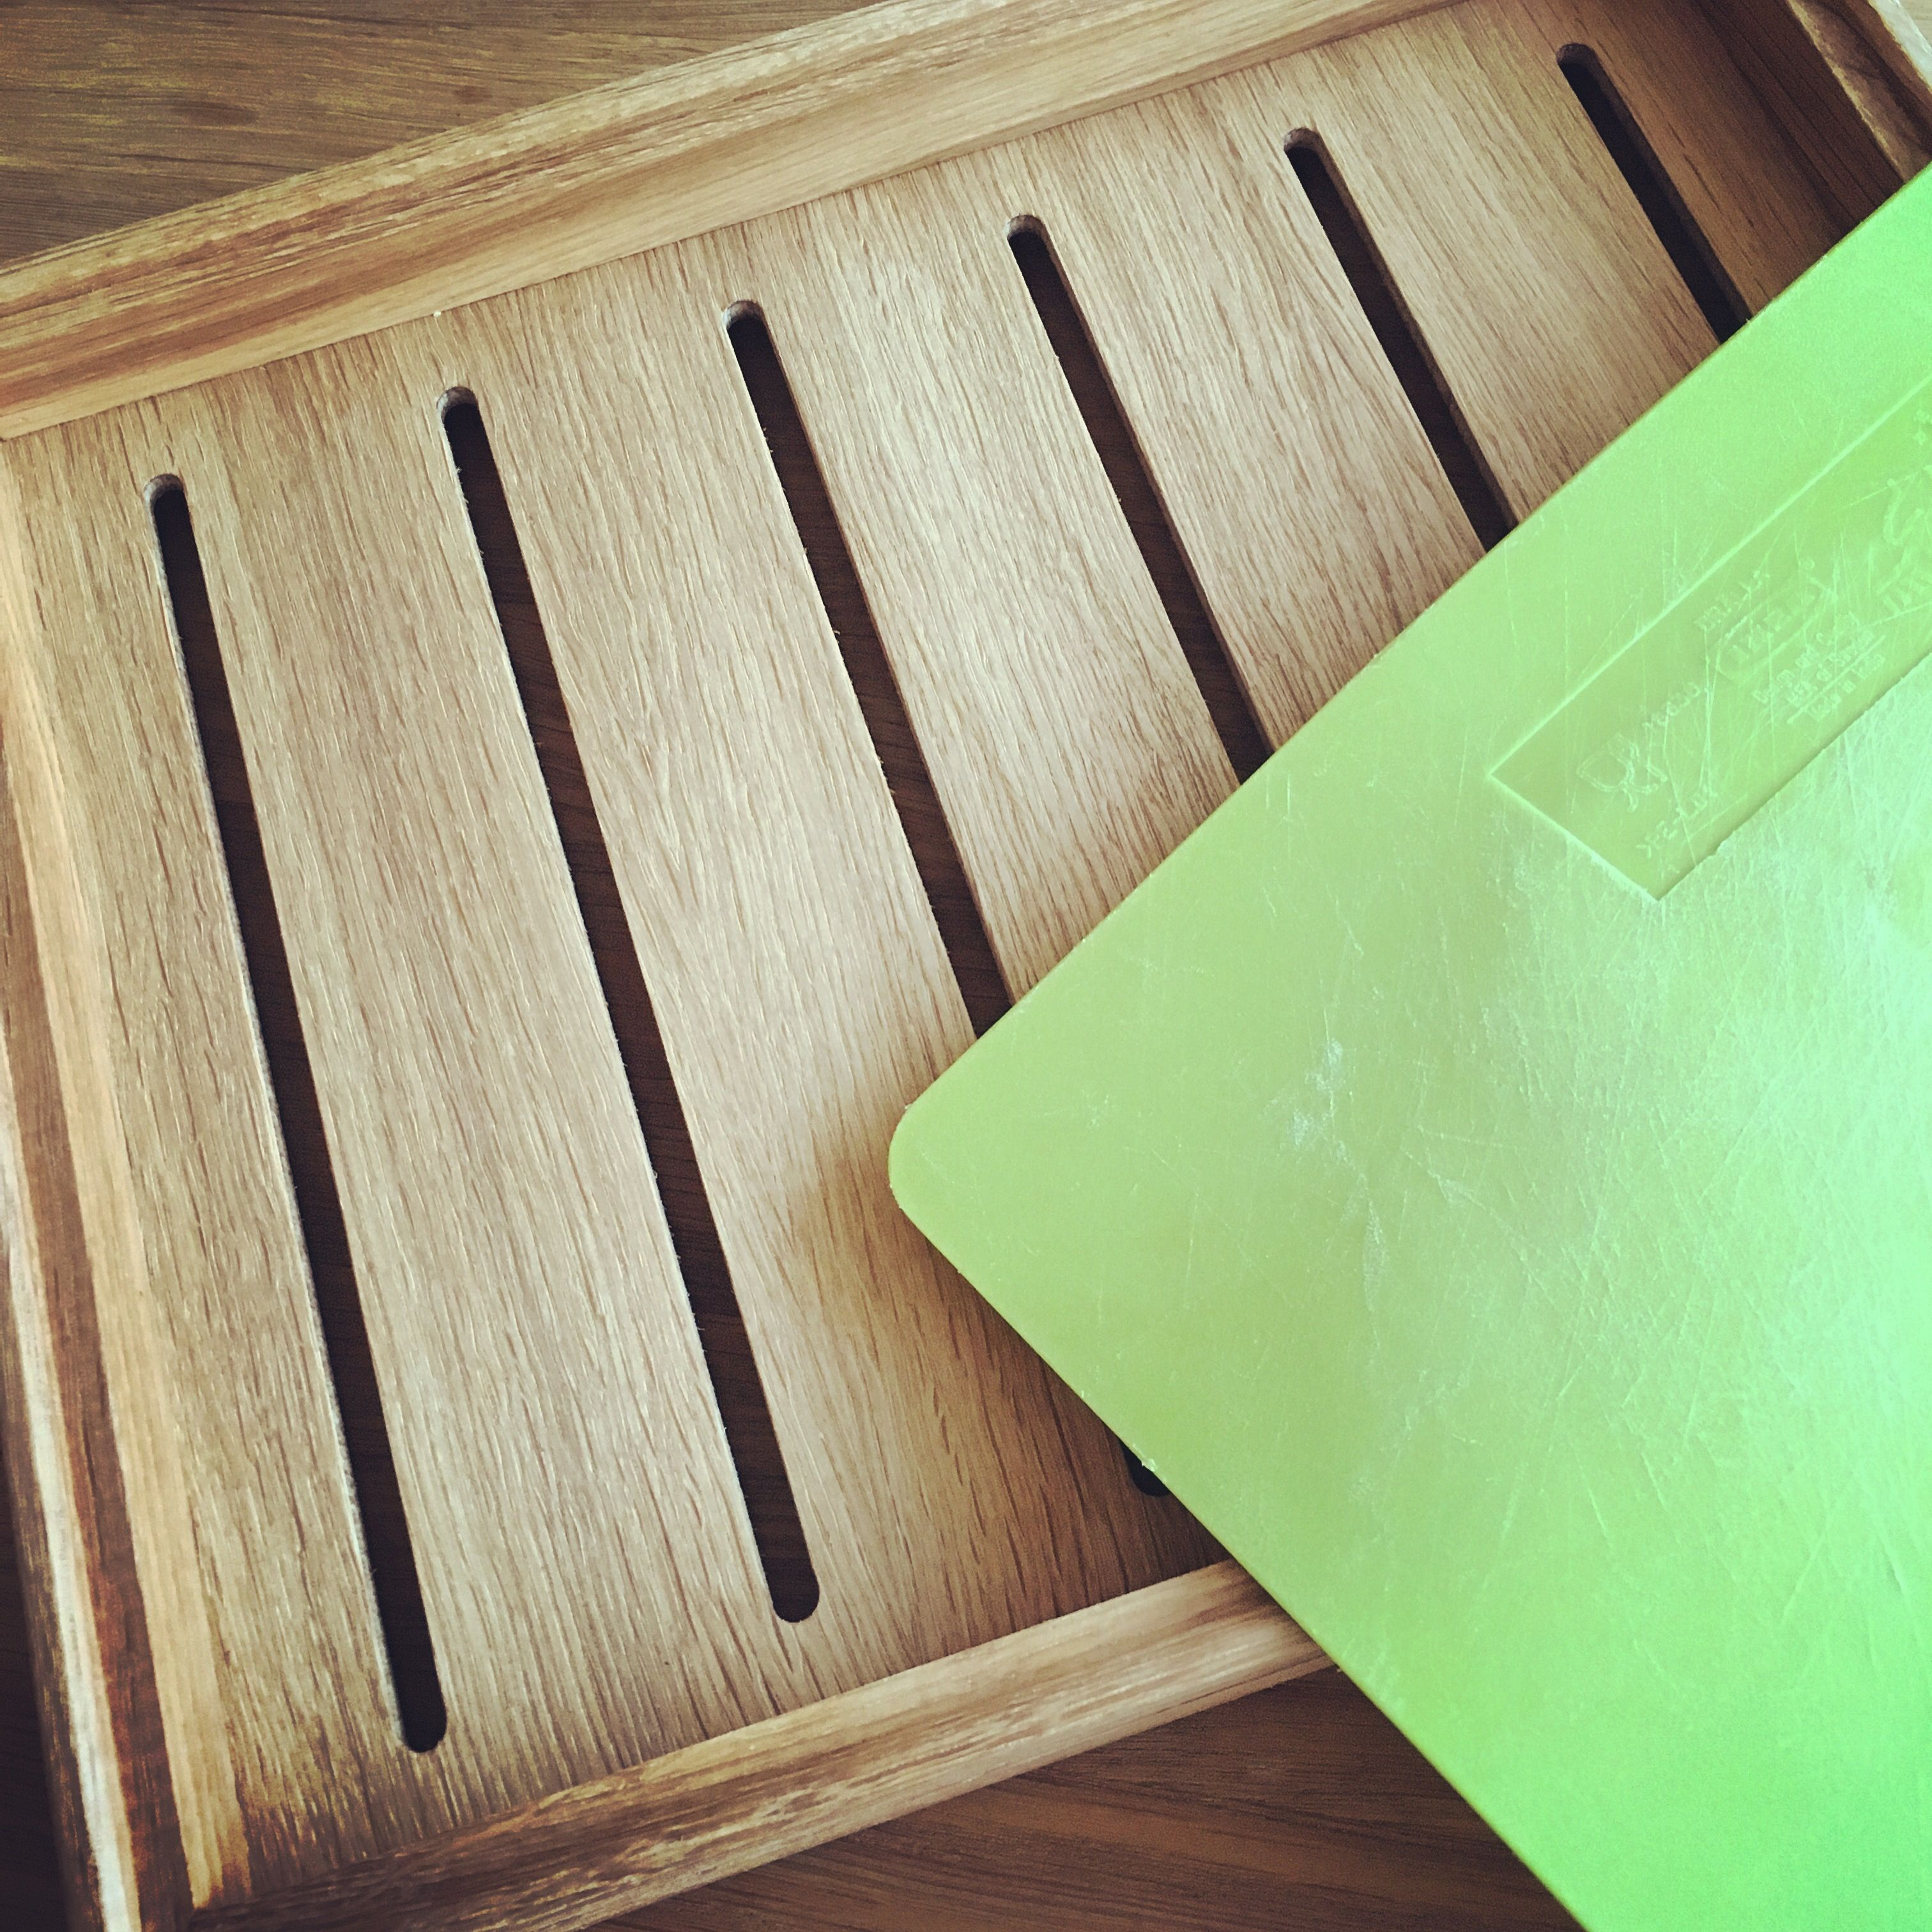 Super Easy Ikea Hack Upcycled Chopping Board Into Toaster Crumb Tray